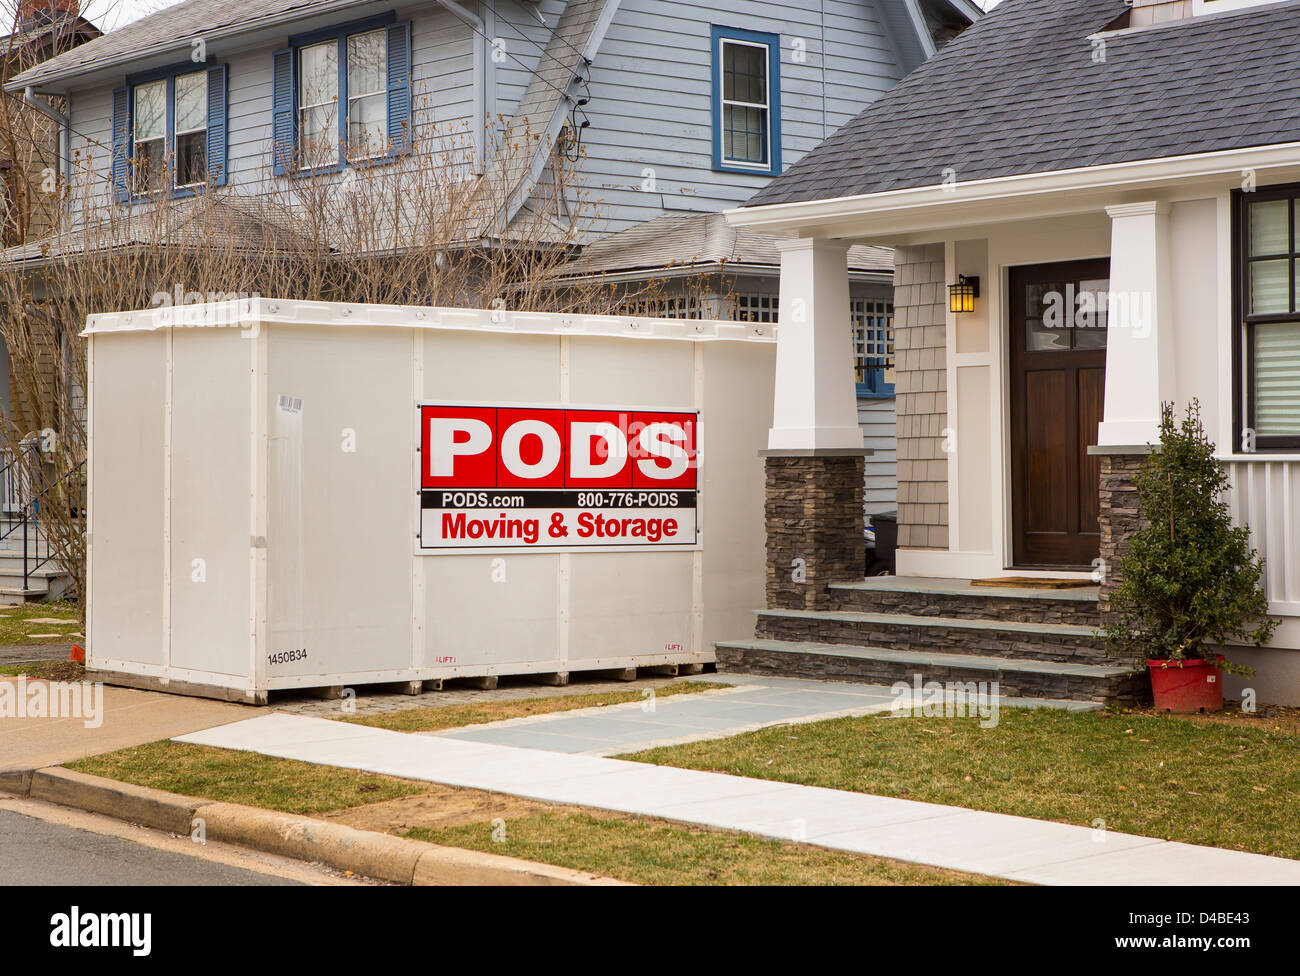 ARLINGTON, VIRGINIA, USA   PODS Storage Container In Front Of Houses.